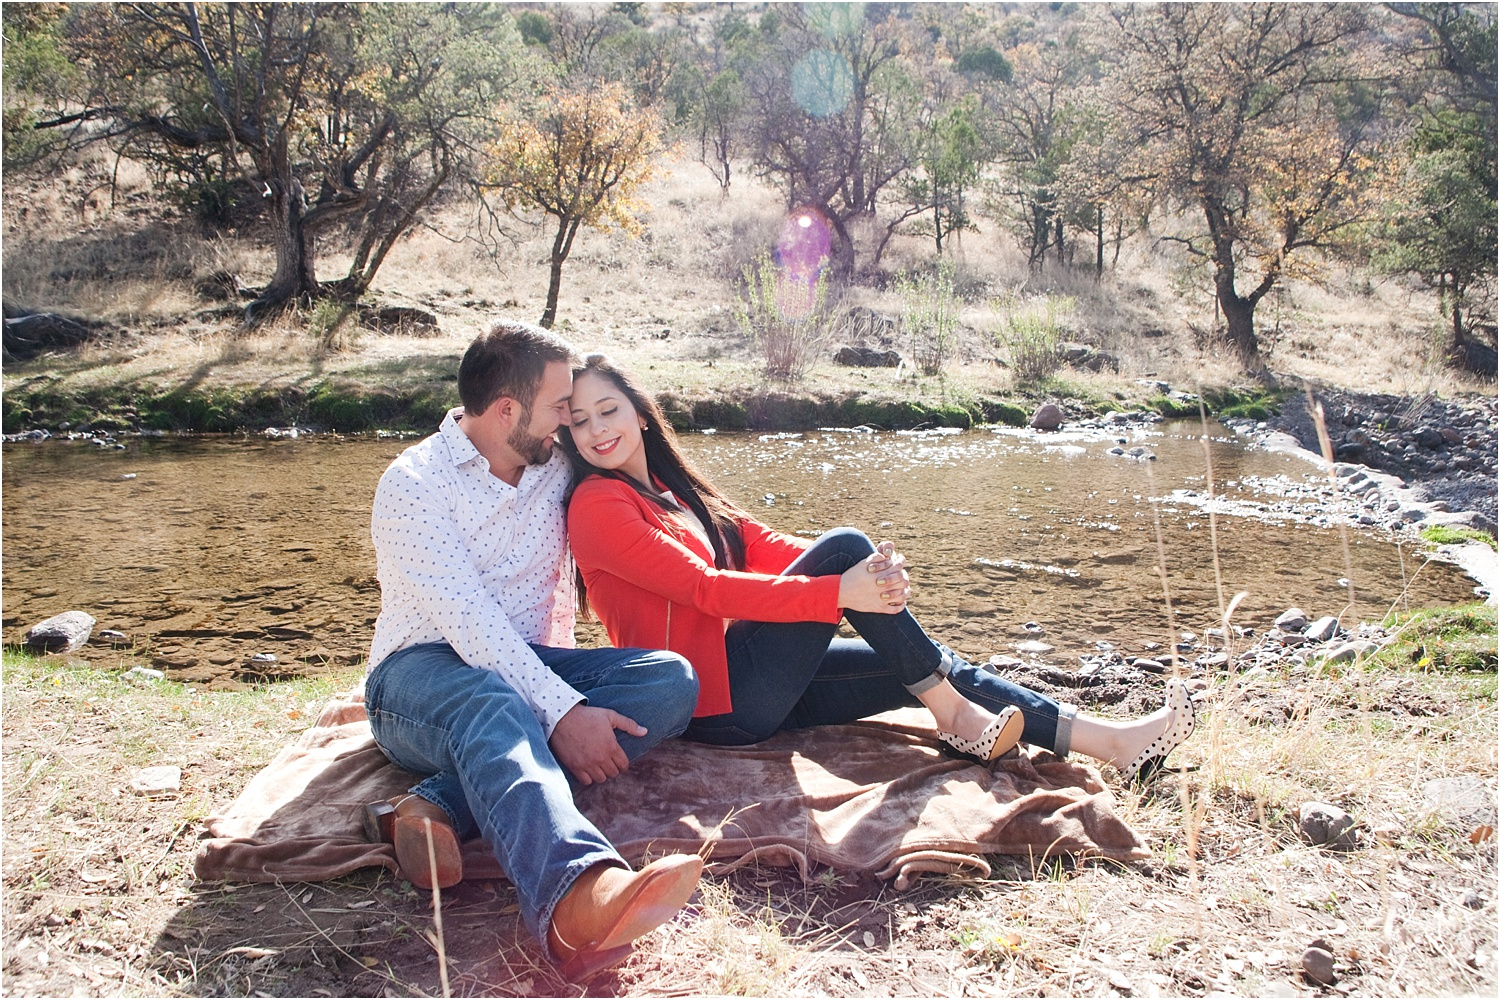 couple by a river - How to do Portrait Photography in Bright Midday Sun